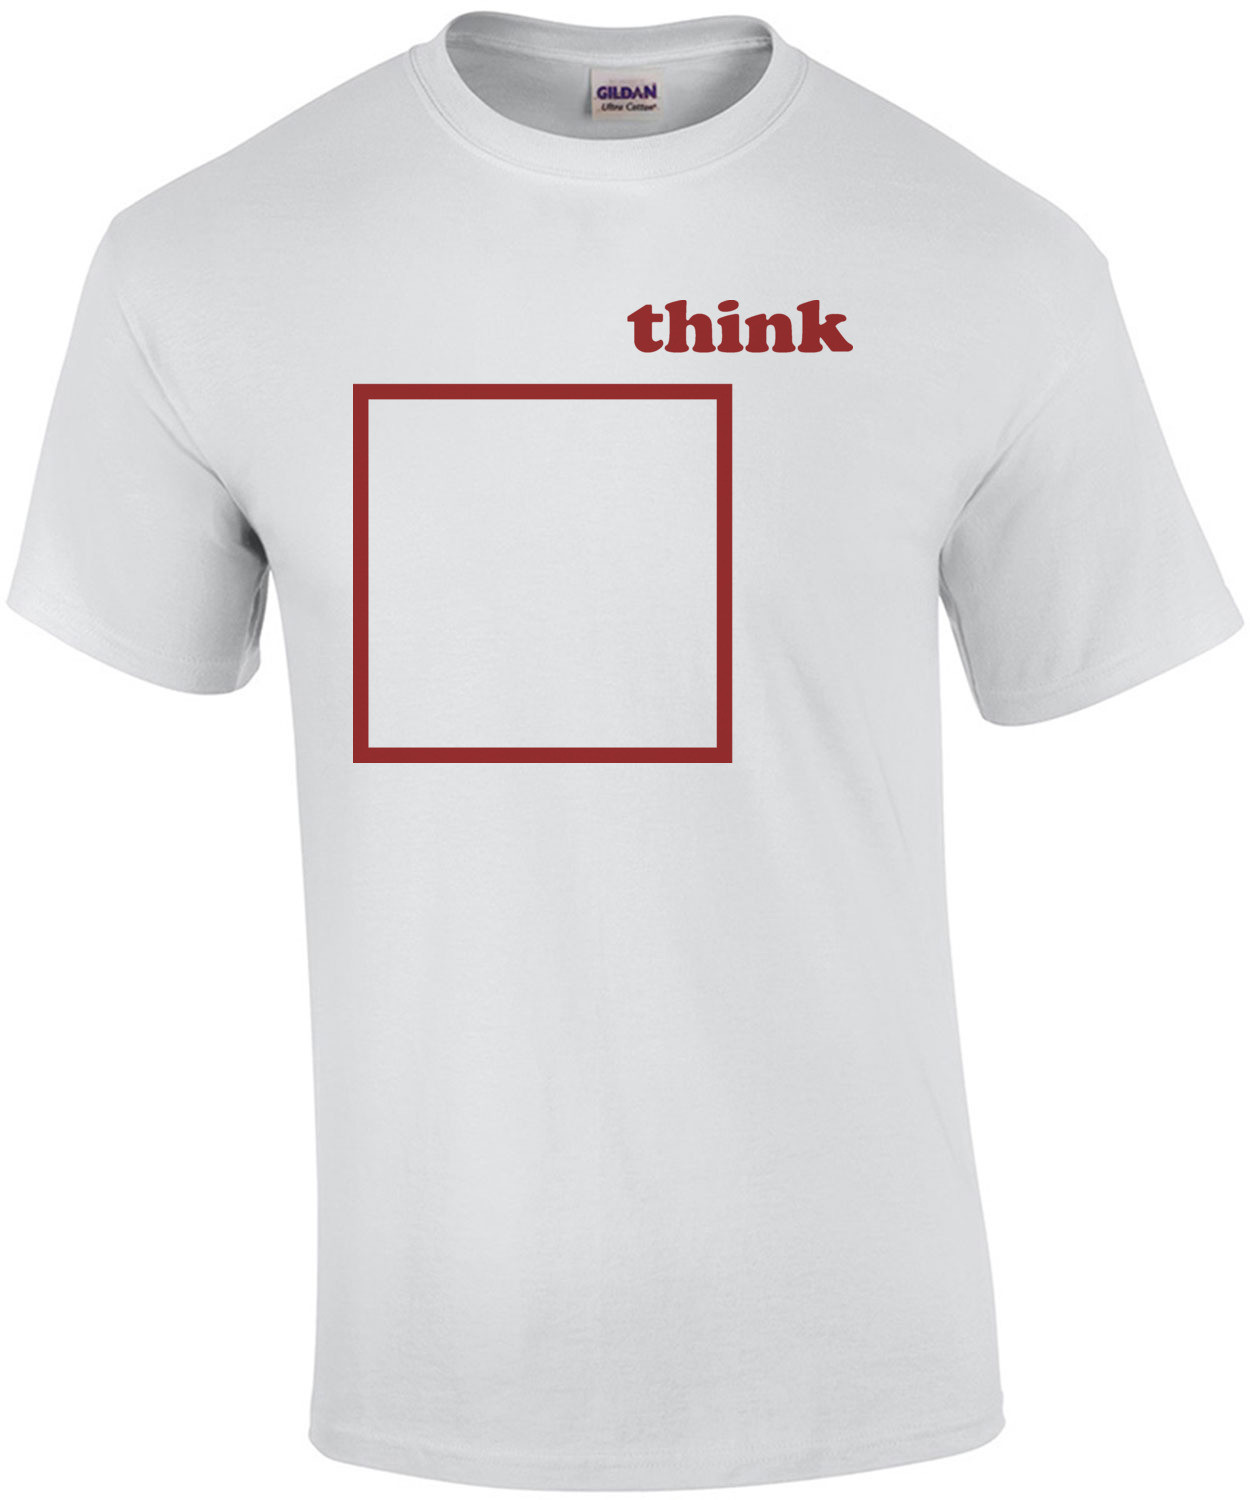 Think outside the box - Funny